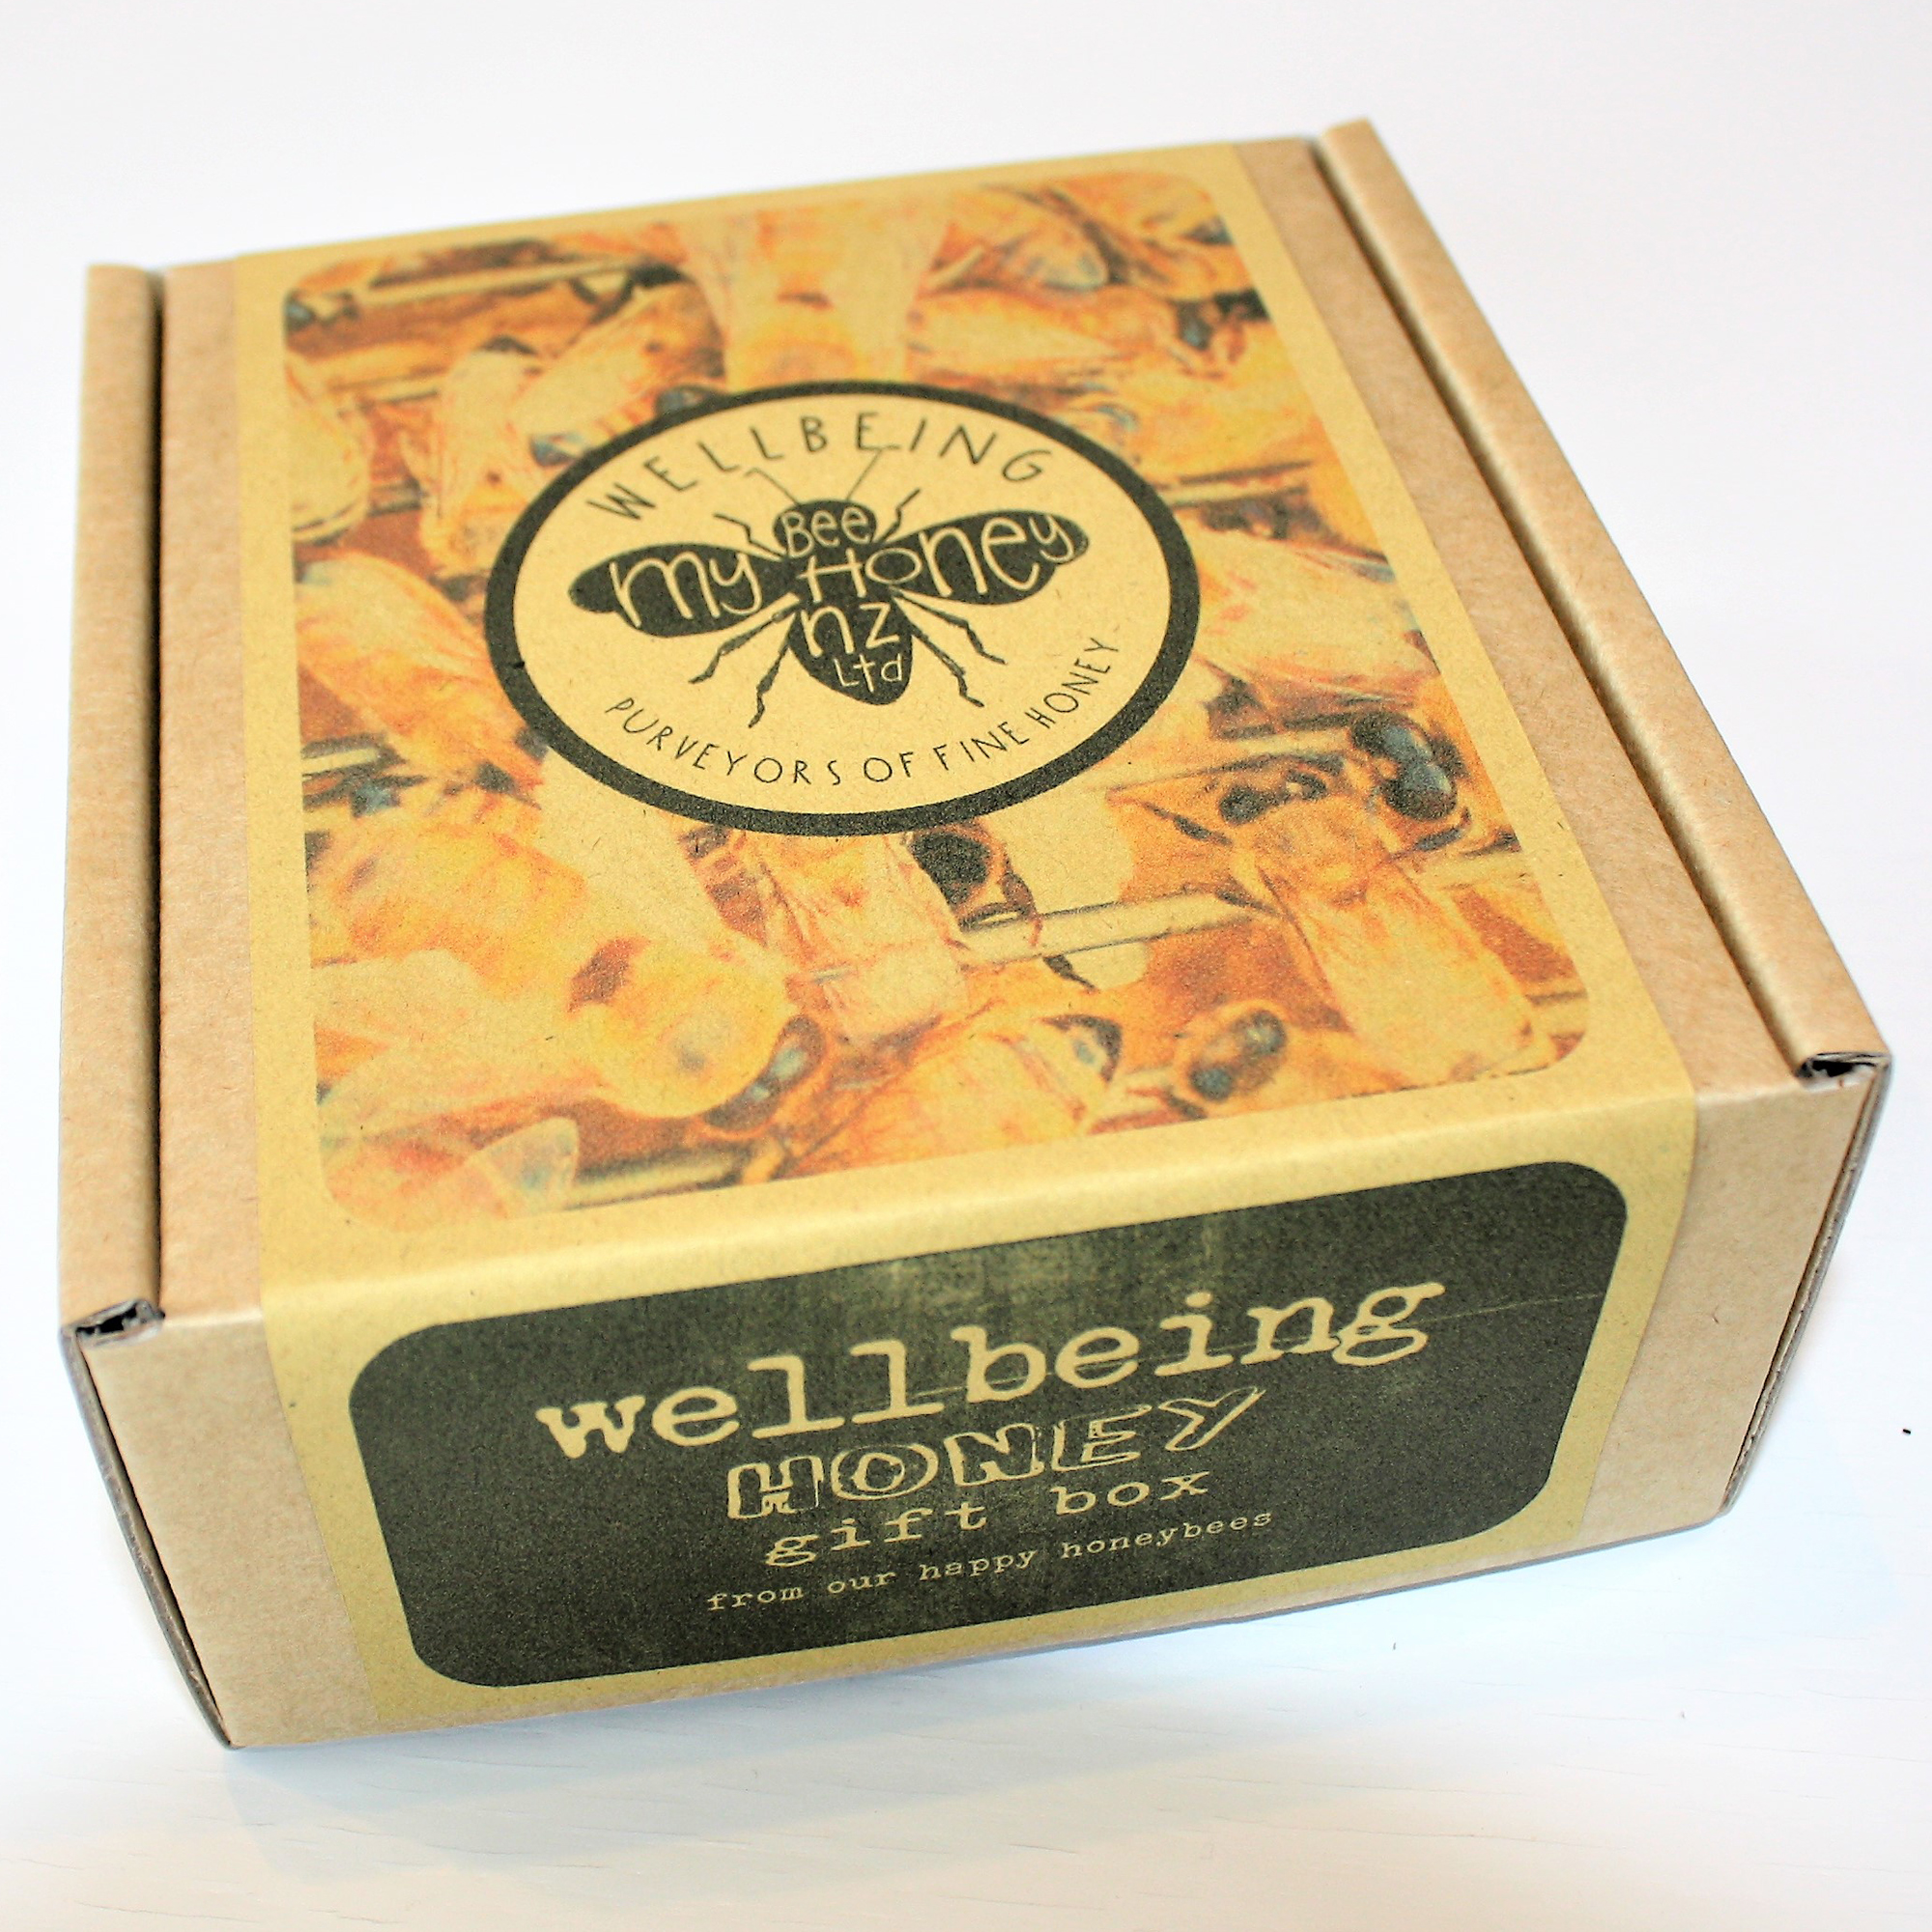 bees in a box, box of honeybees, honeybees gift wrapping, voted best gift box 2018